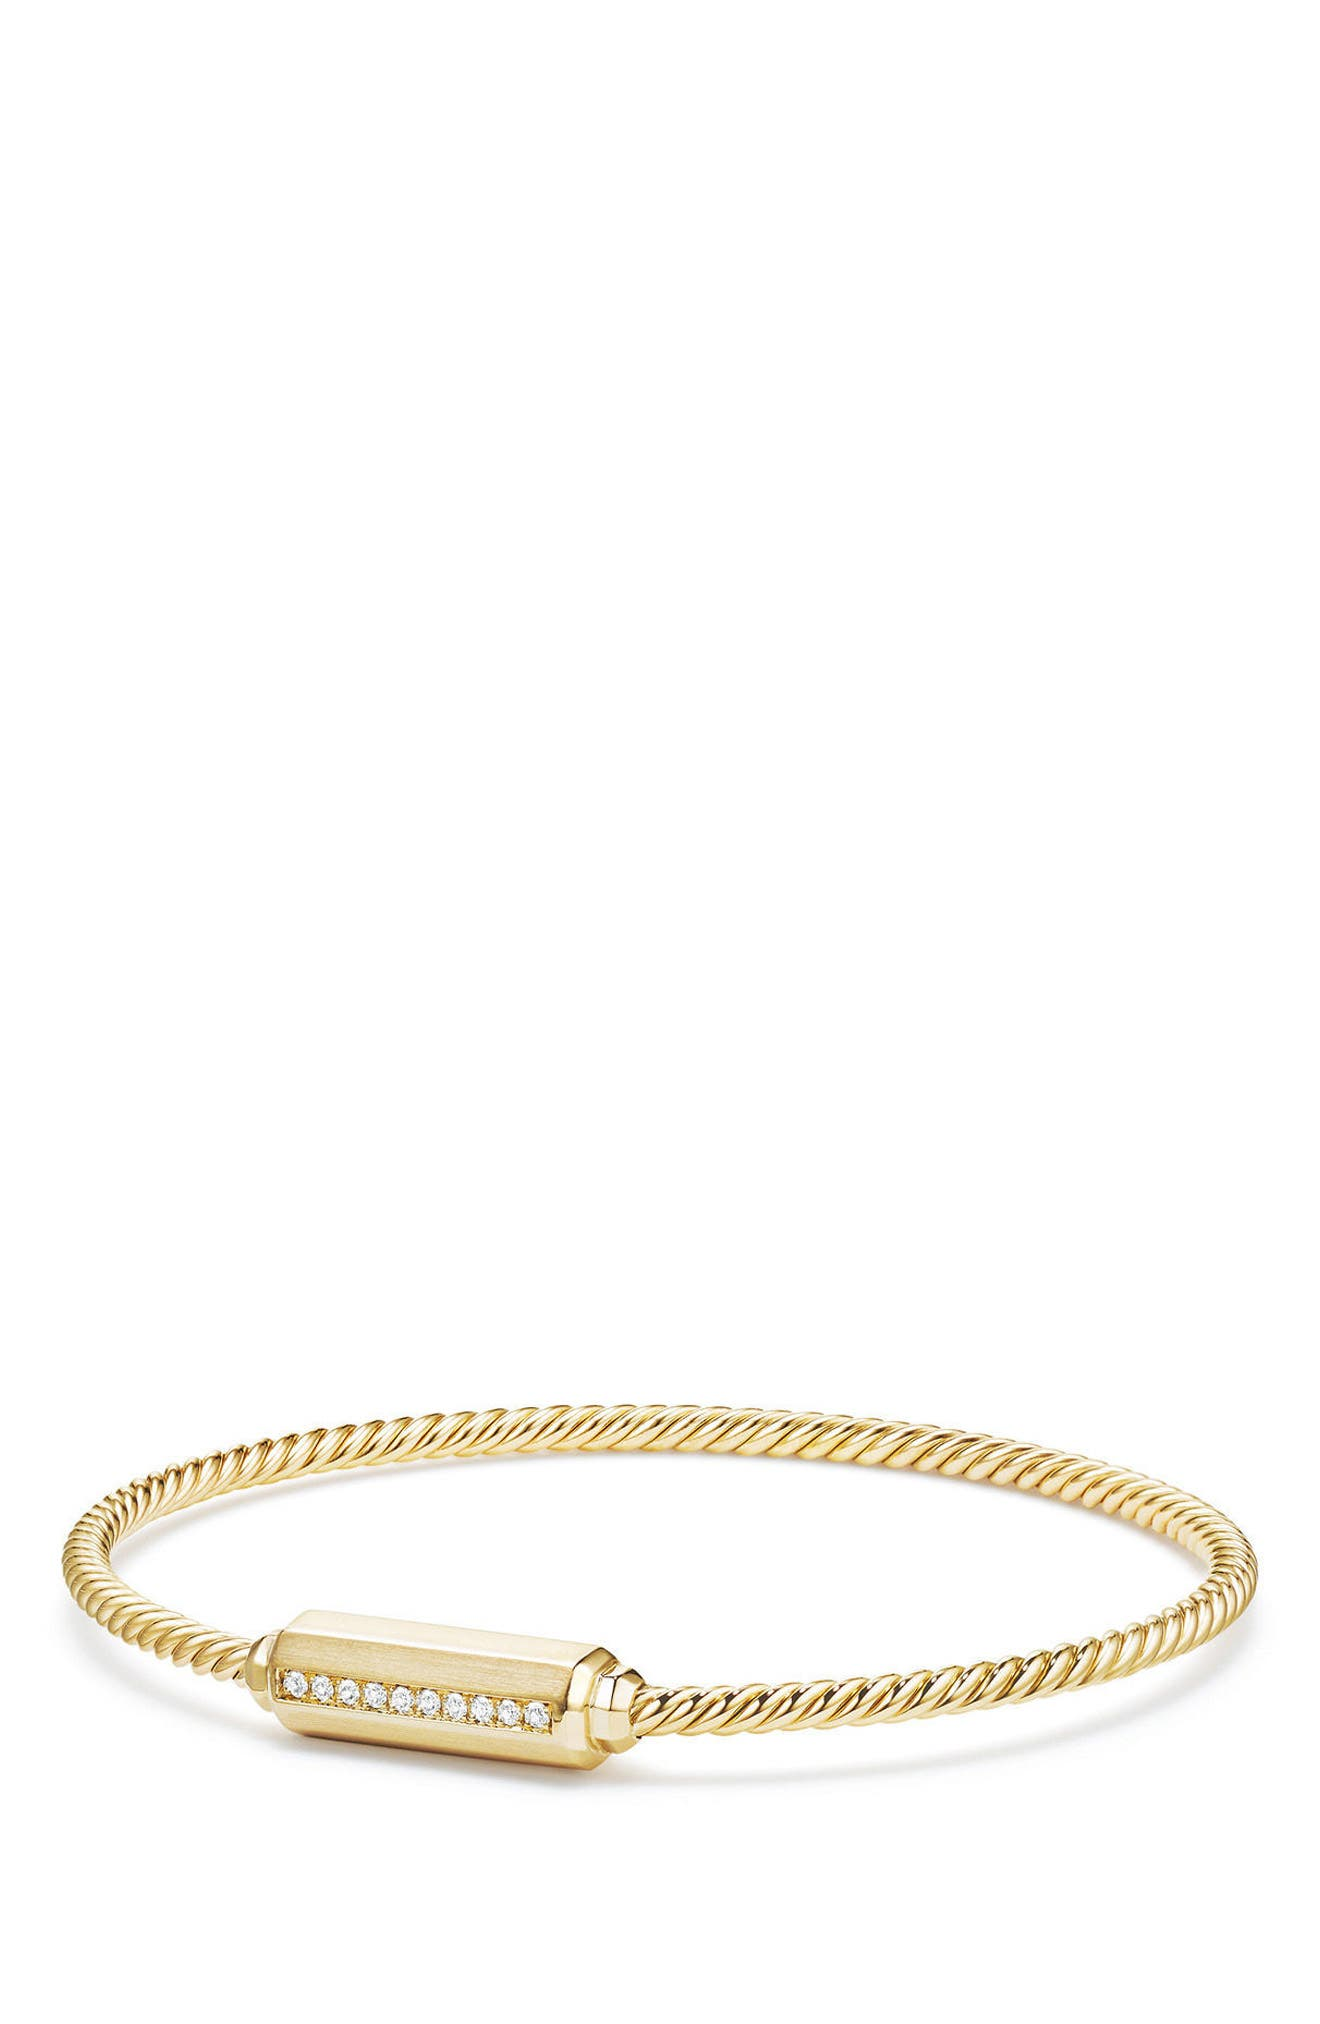 Barrels Bracelet with Diamonds in 18K Gold,                         Main,                         color, YELLOW GOLD